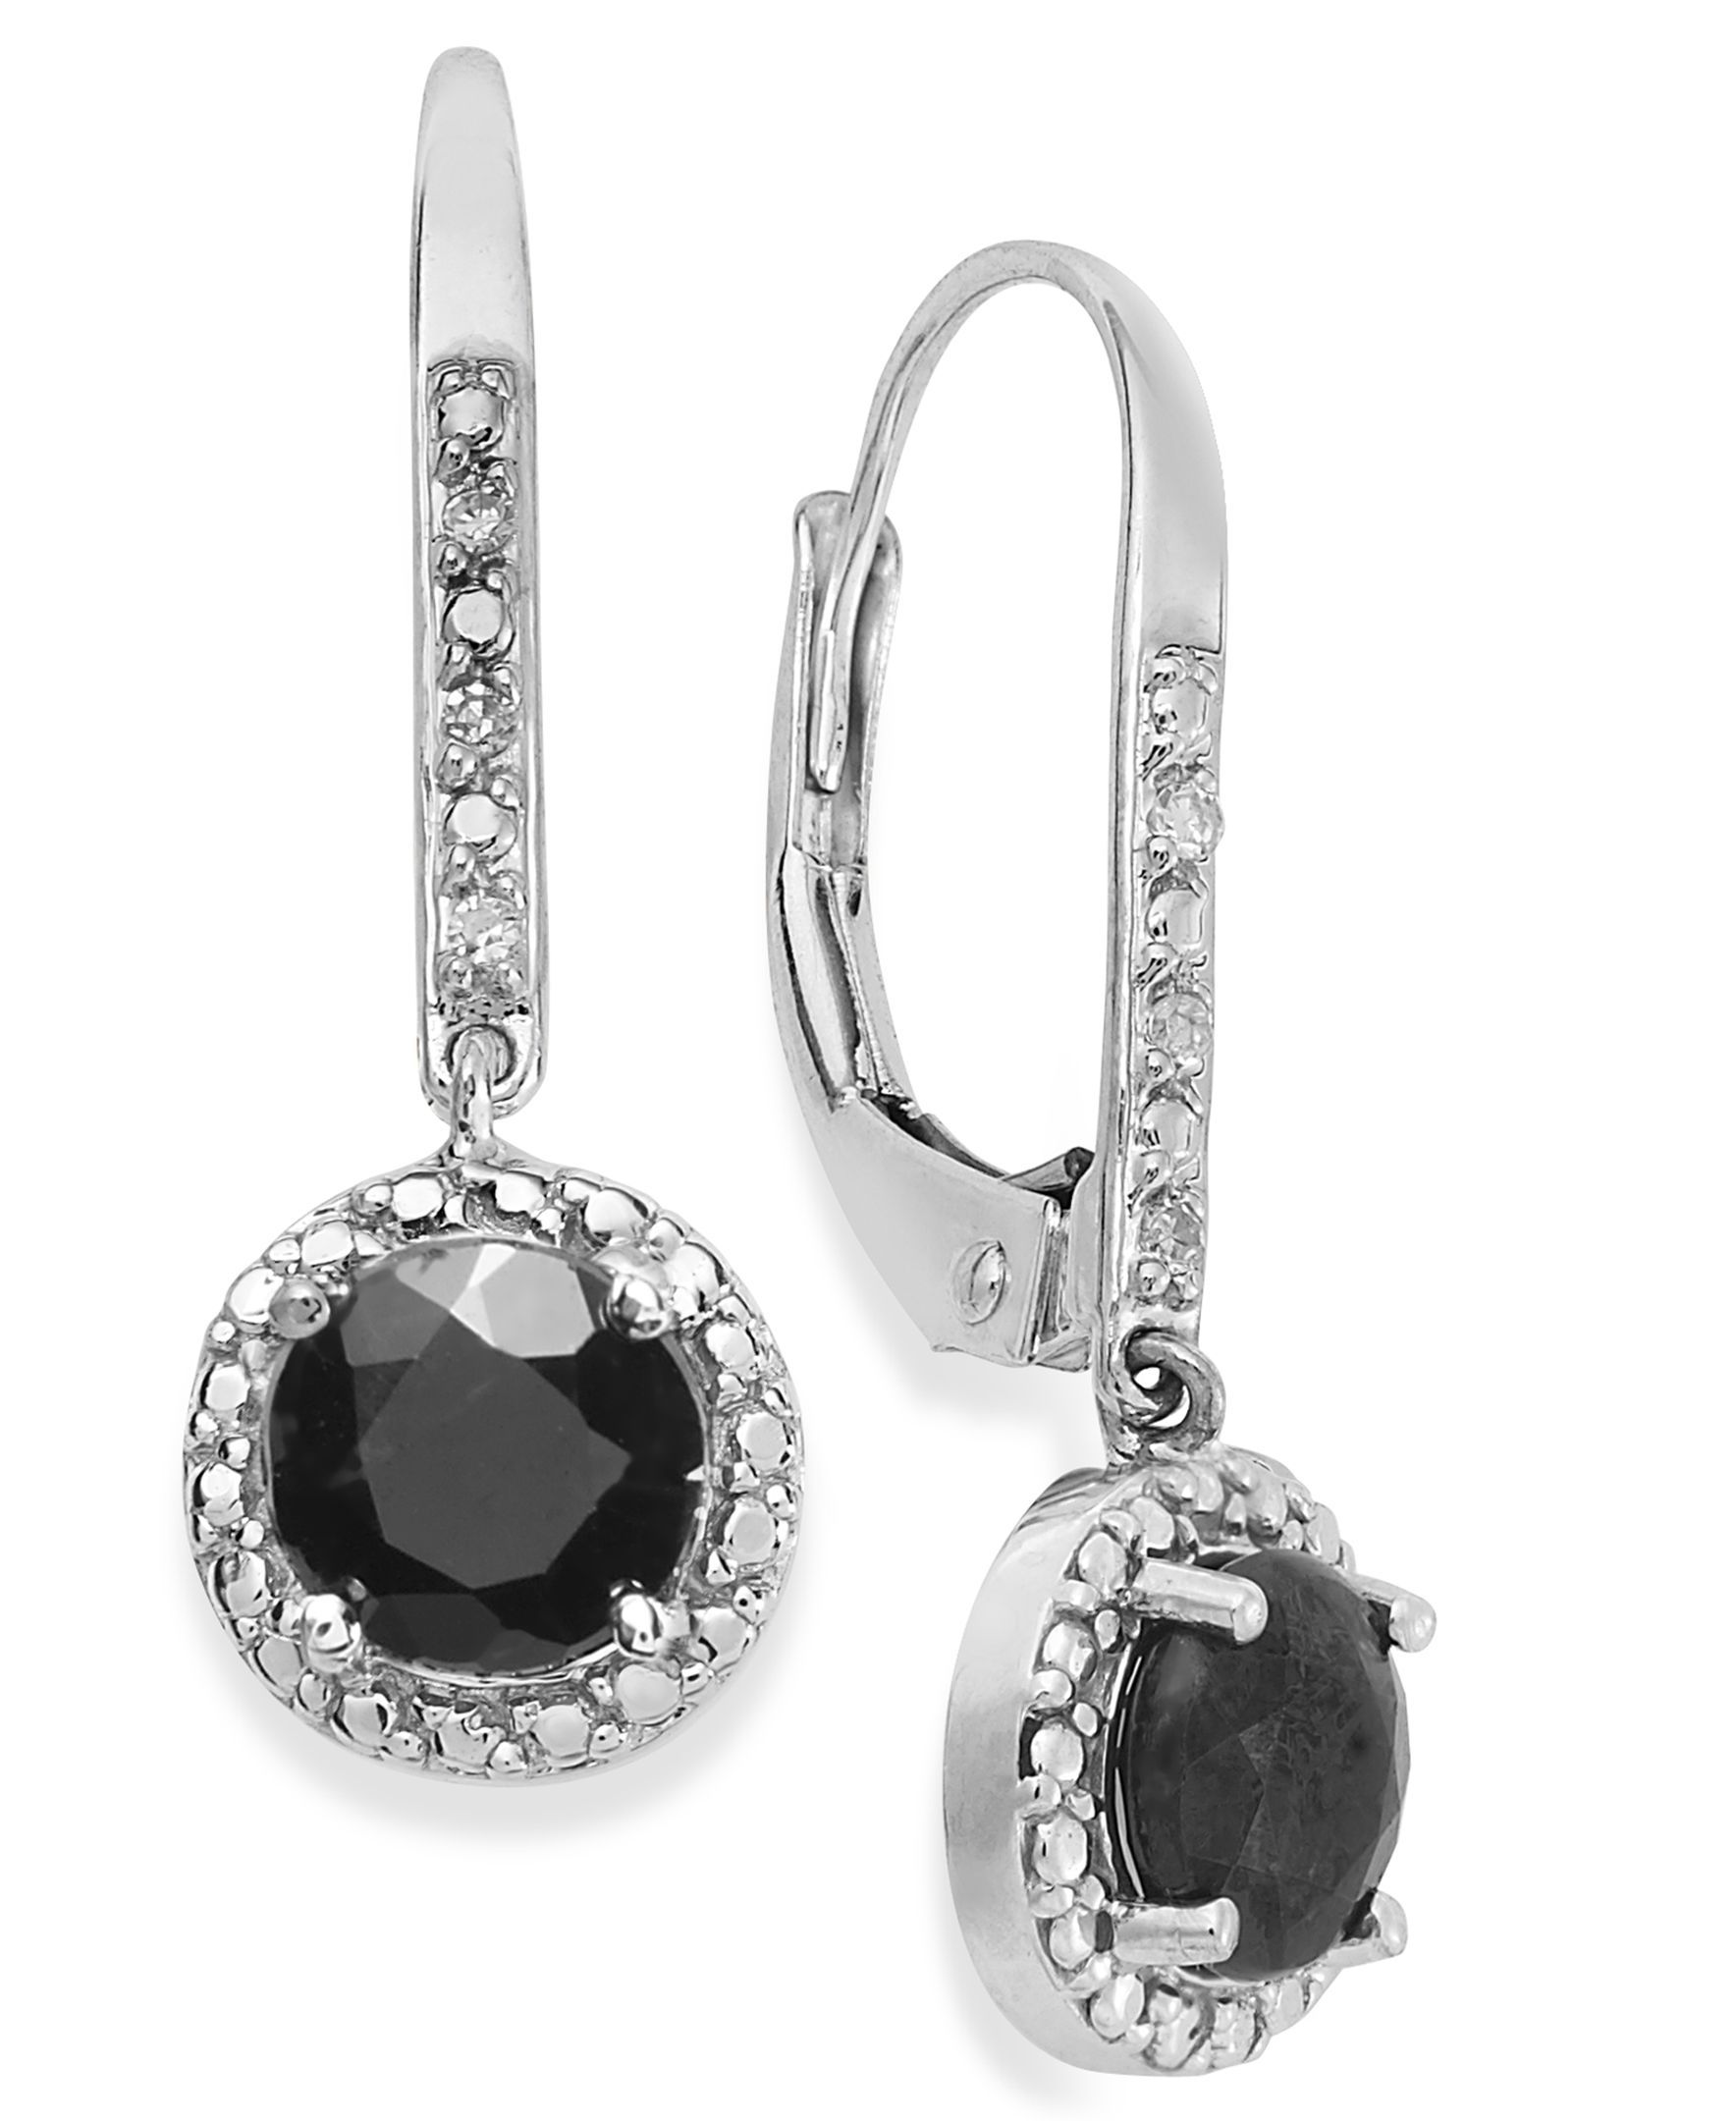 10k White Gold Earrings, Sapphire (1 ct. t.w.) and Diamond Accent Leverback Earrings